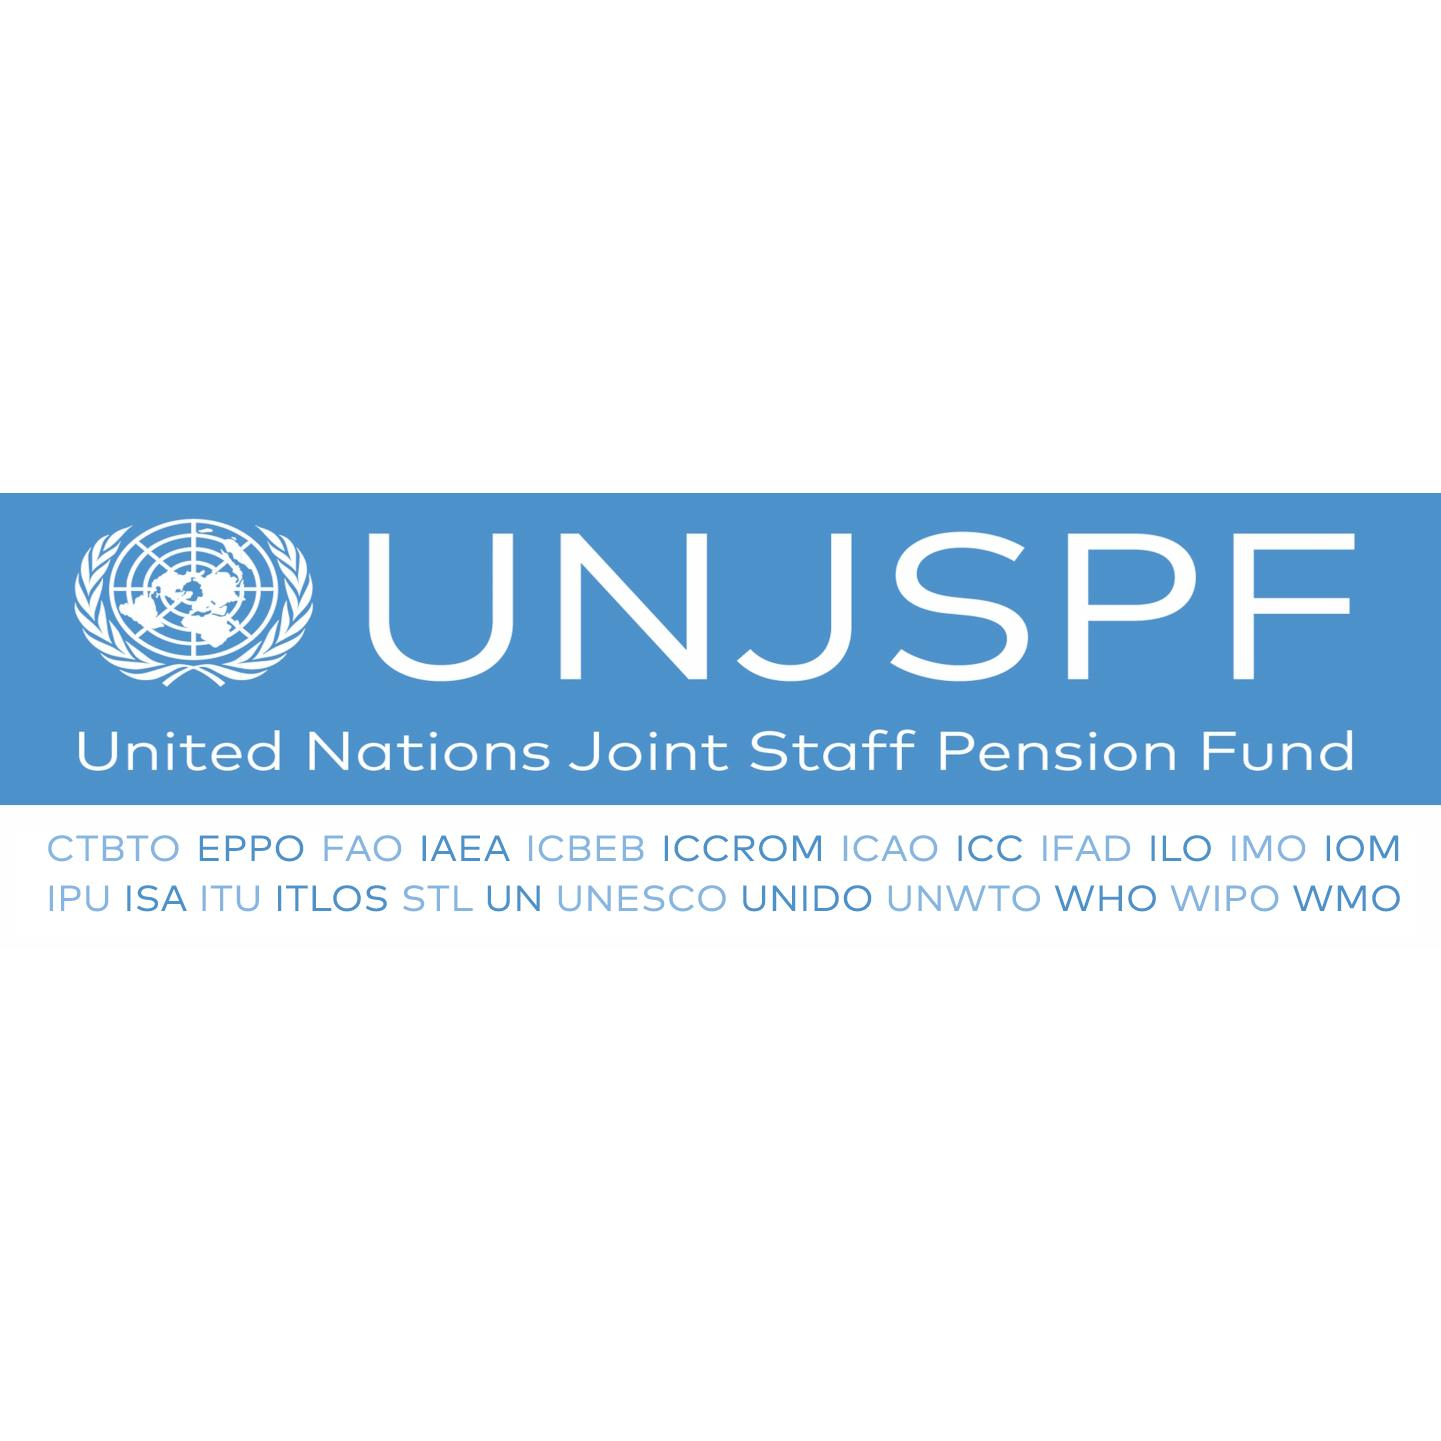 United Nations Joint Staff Pension Fund + Logo